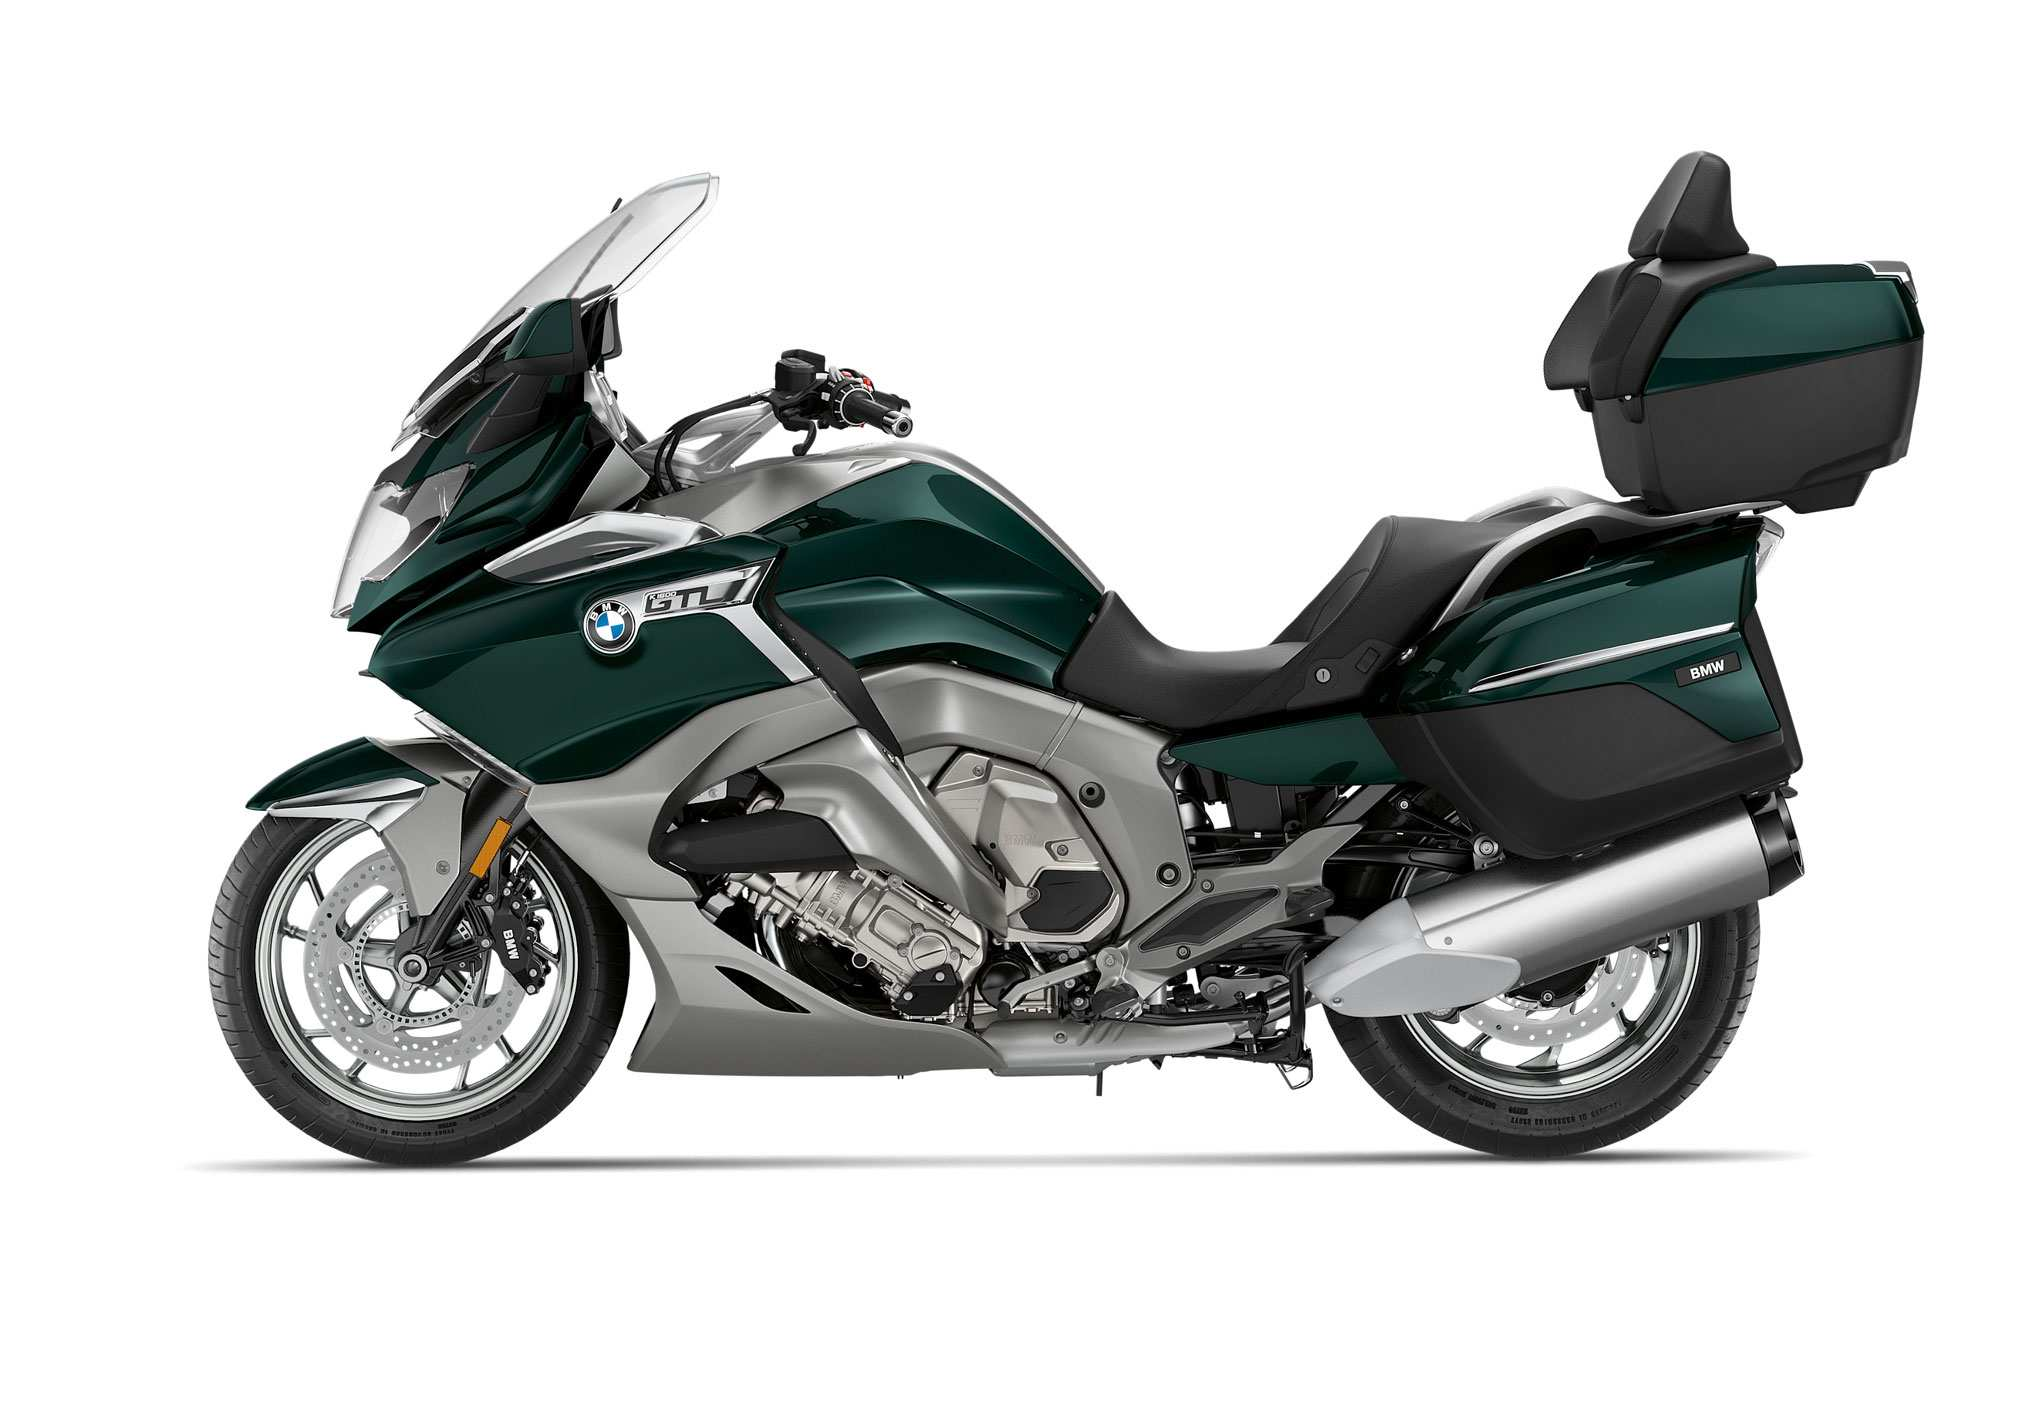 68 All New BMW K1600 Gtl 2020 Exterior And Interior